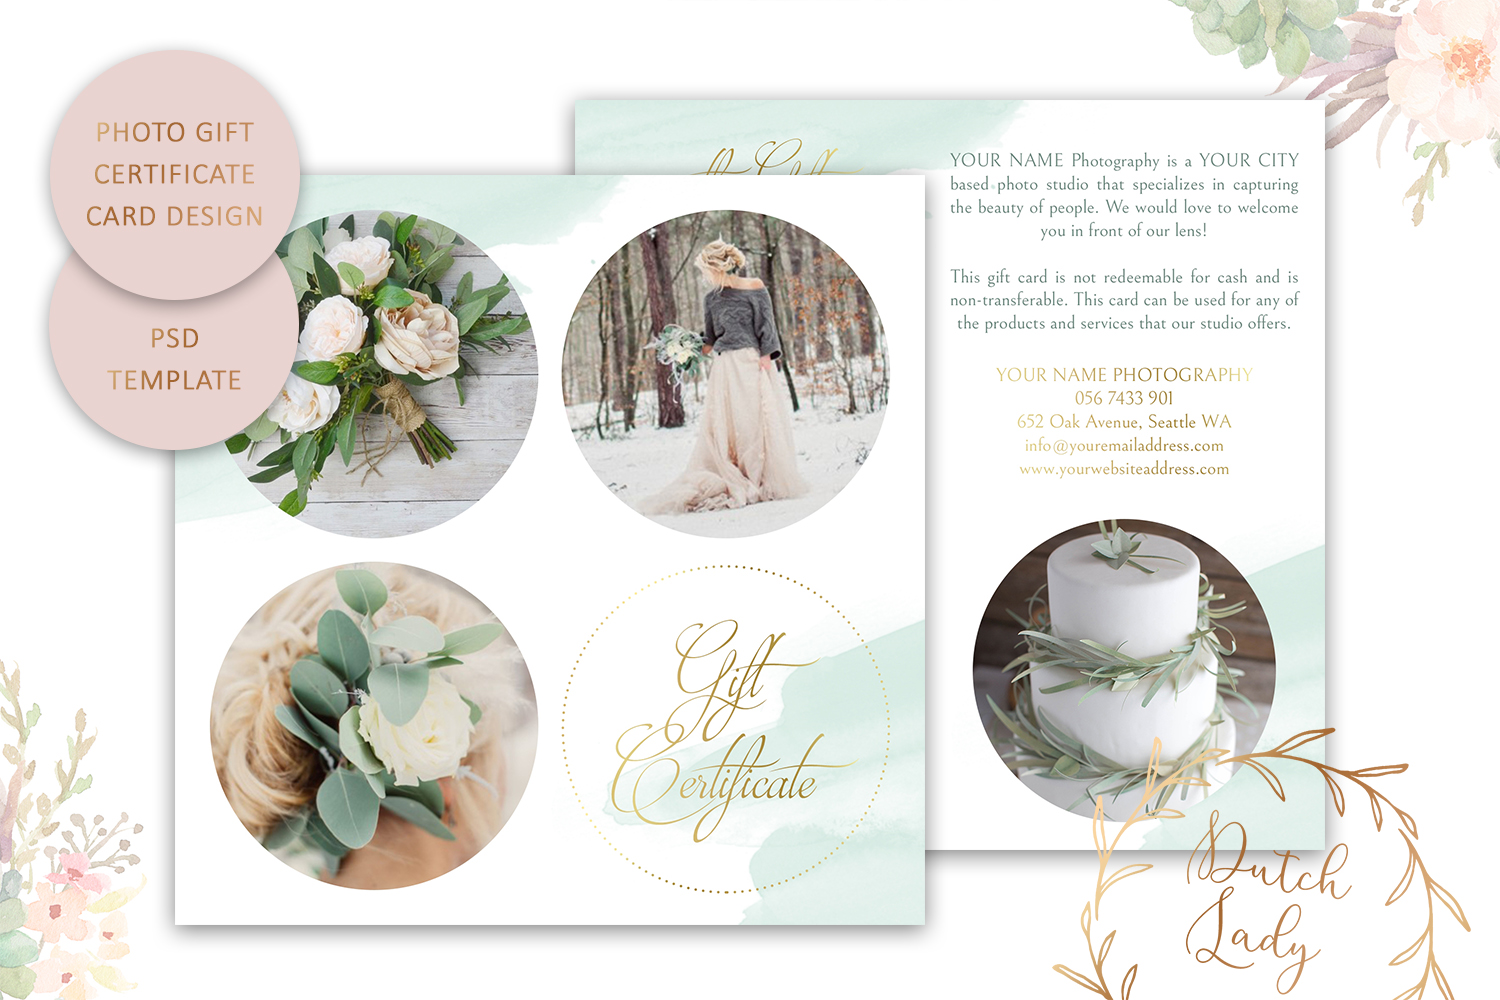 Photography Gift Certificate Card Adobe Photoshop Psd Template